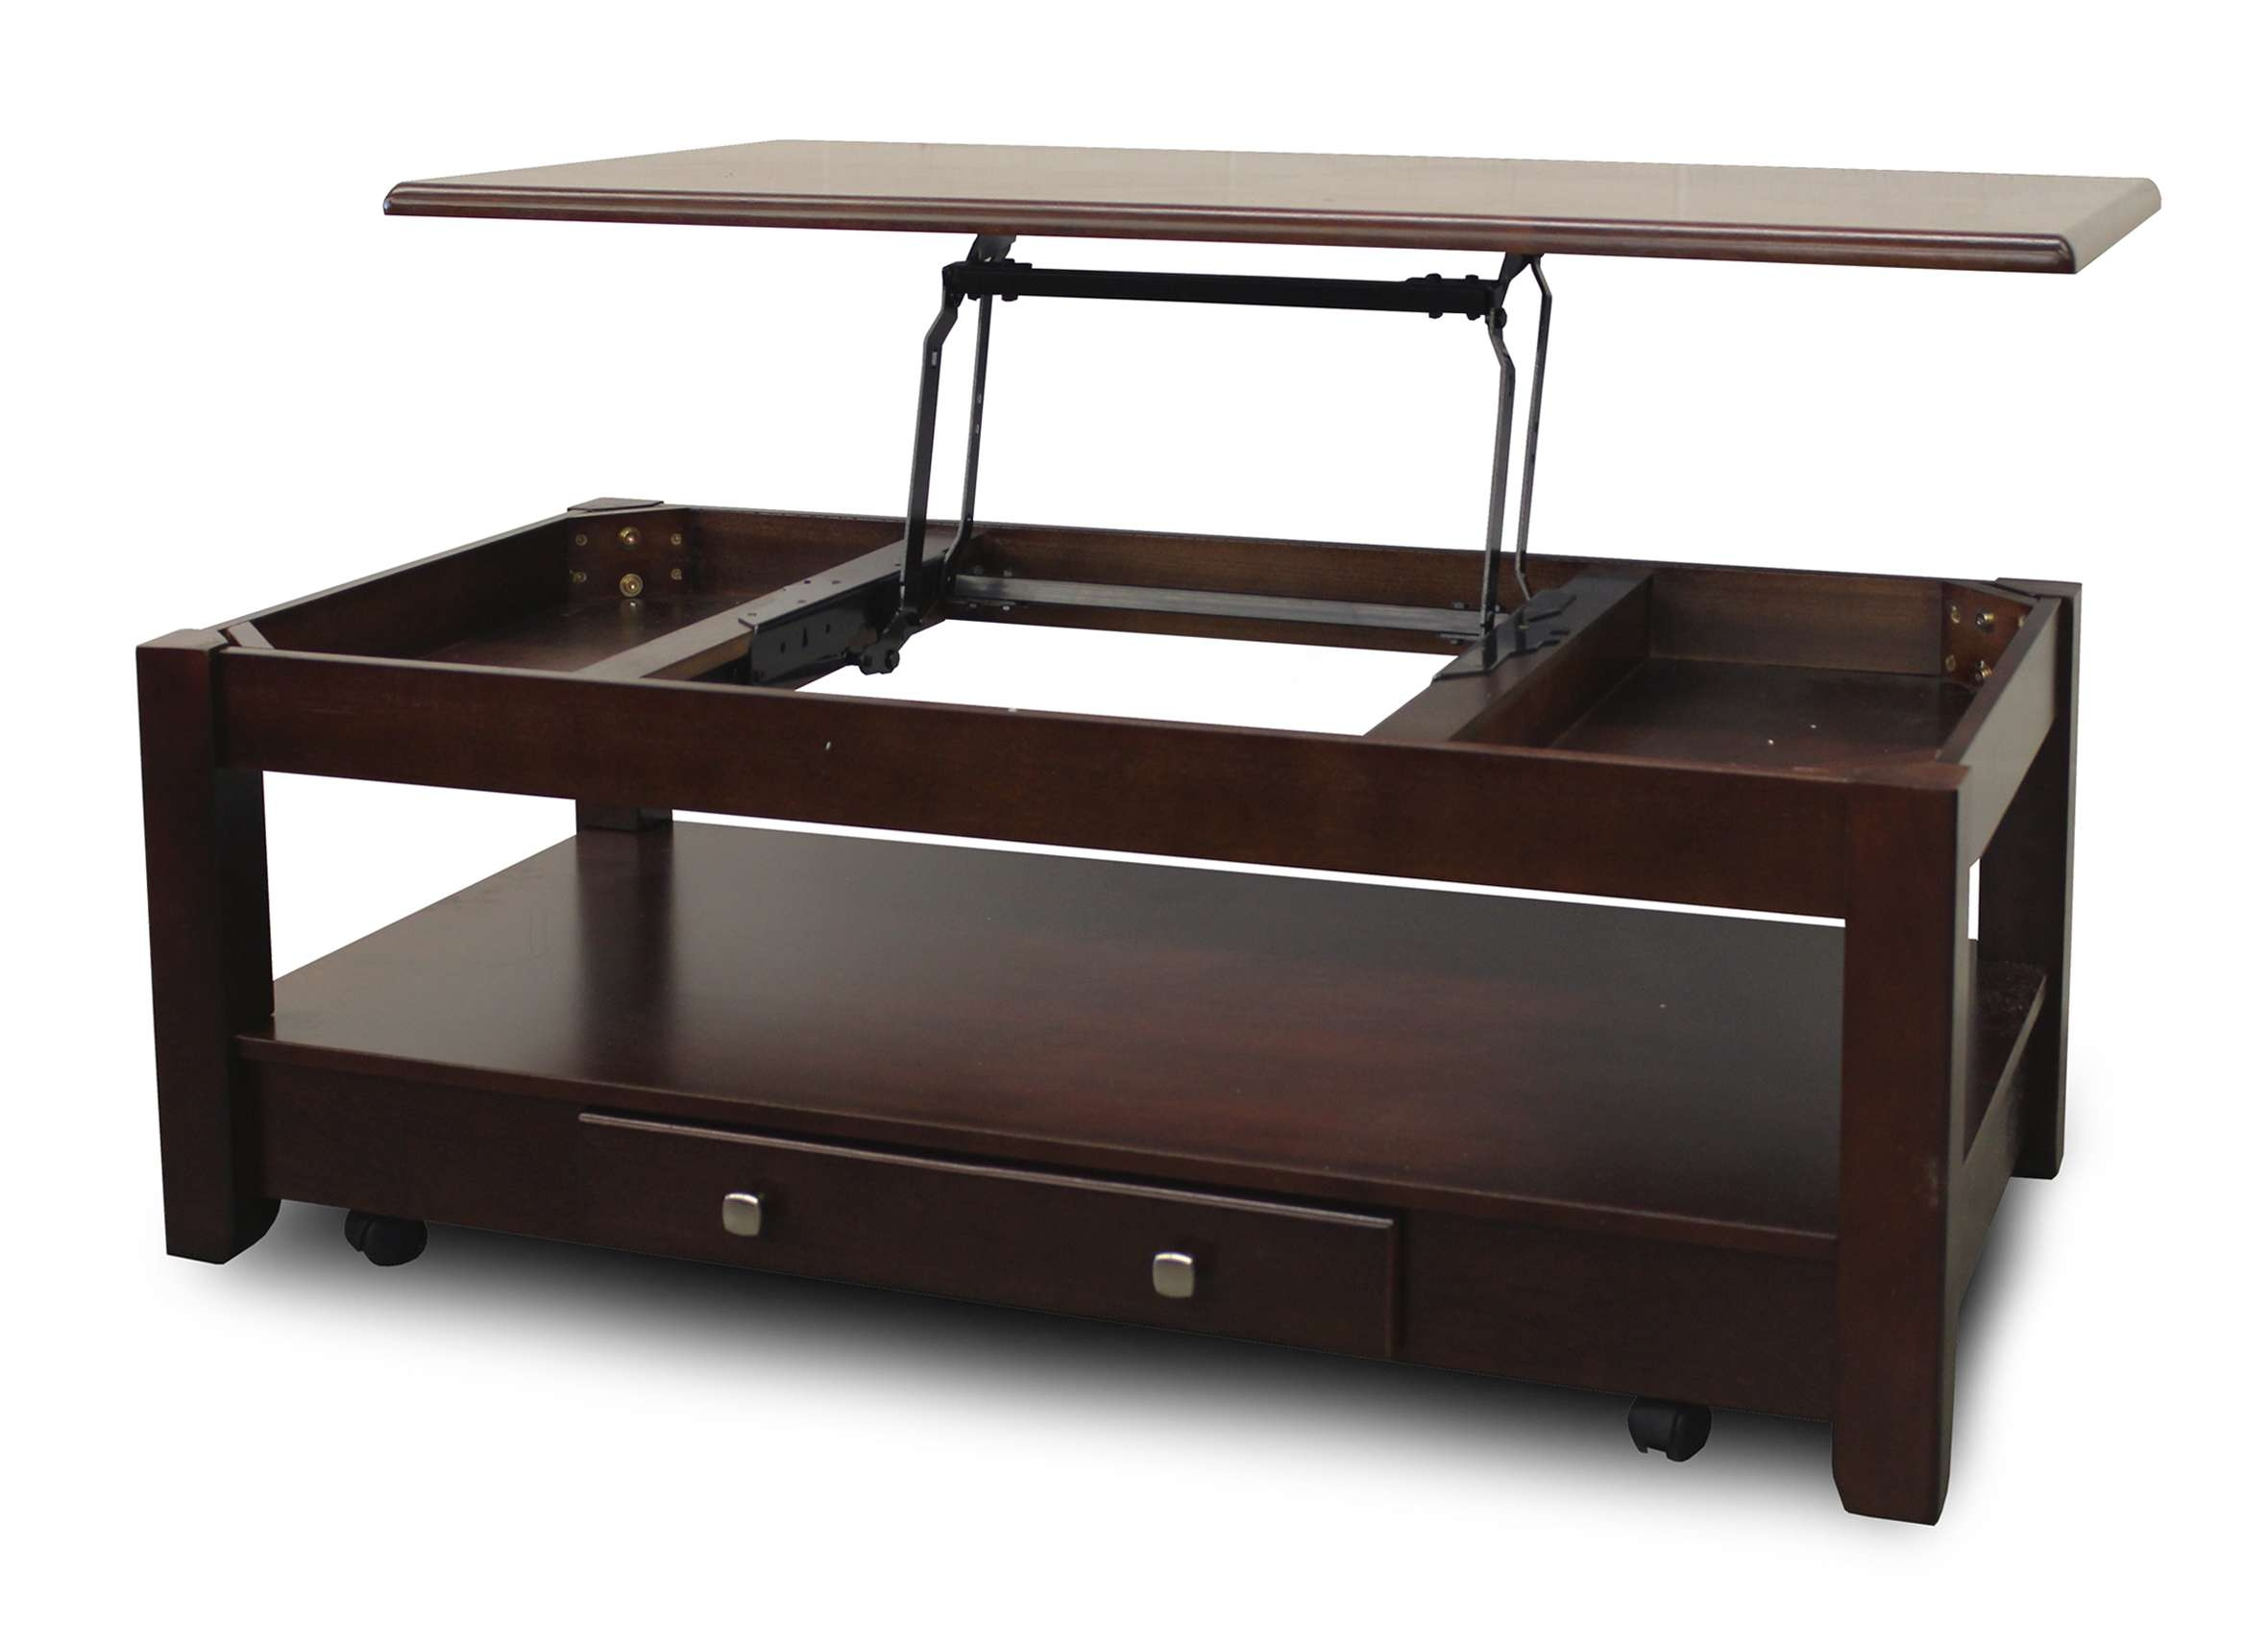 Double Lift Top Table 20 The Best Cheap Lift Top Coffee Tables